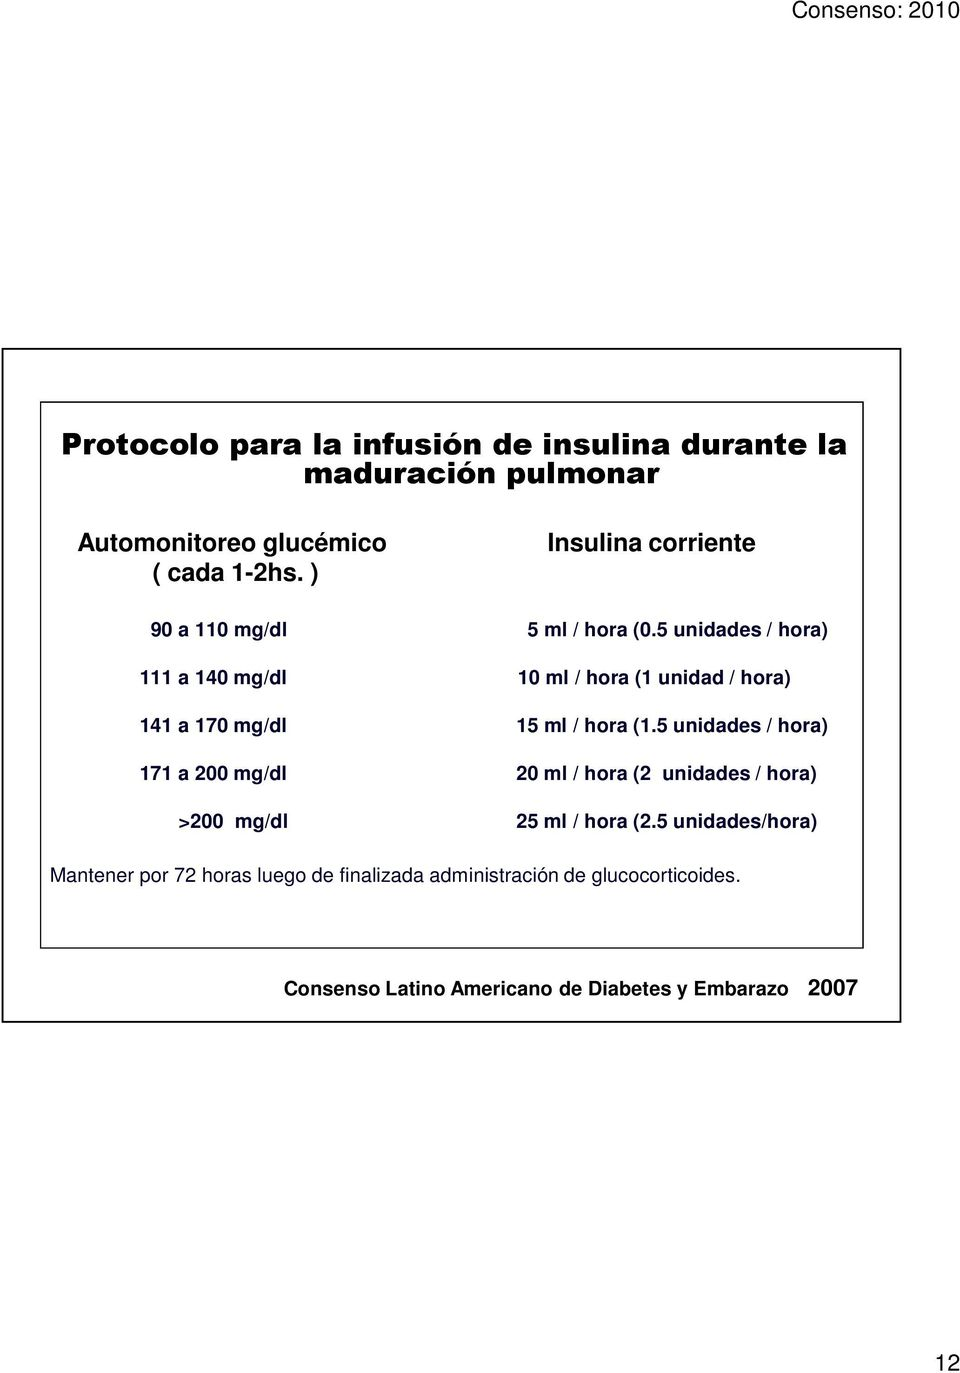 5 unidades / hora) 111 a 140 mg/dl 10 ml / hora (1 unidad / hora) 141 a 170 mg/dl 15 ml / hora (1.